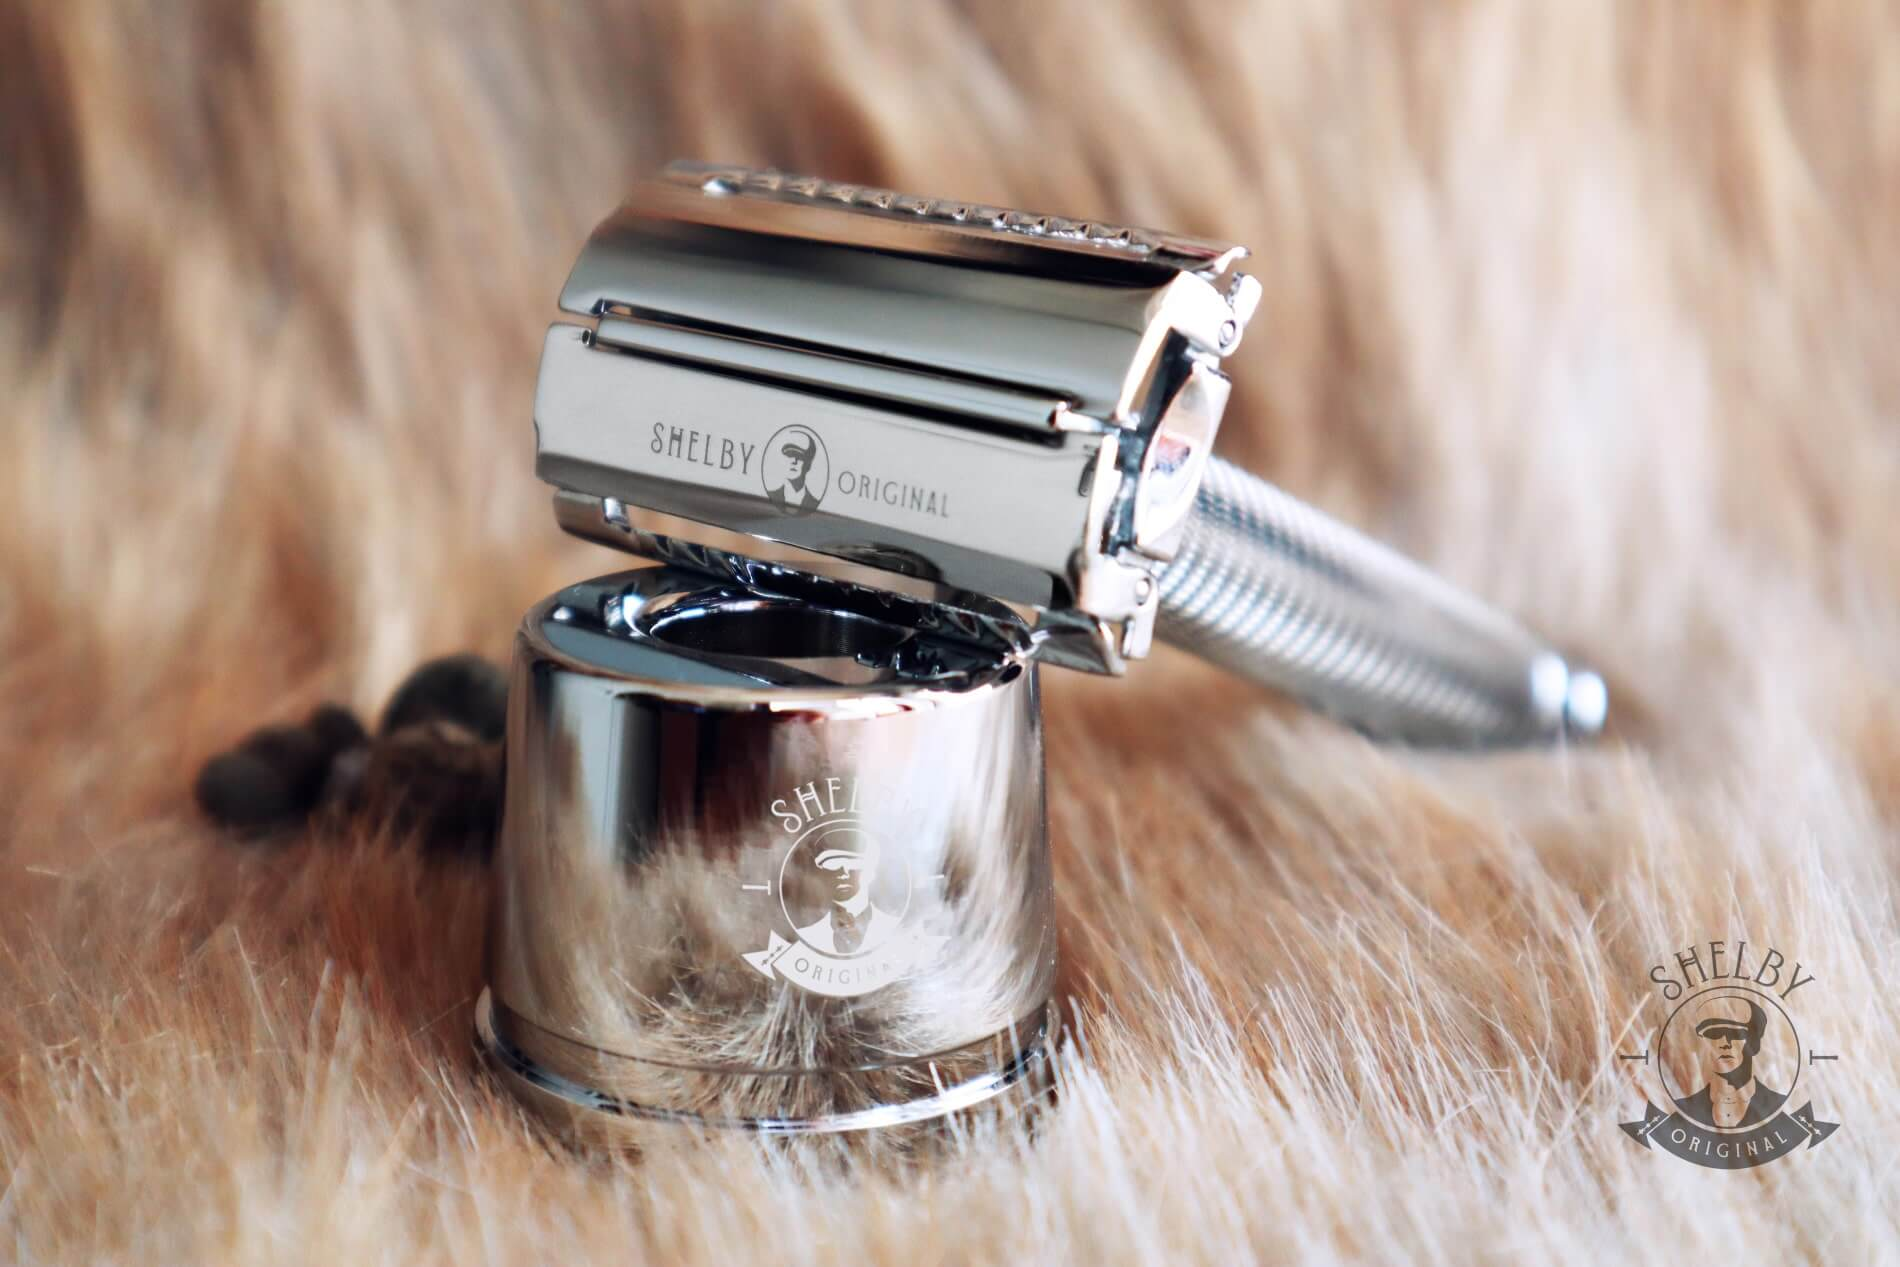 The Authentic Shave Shelby Original